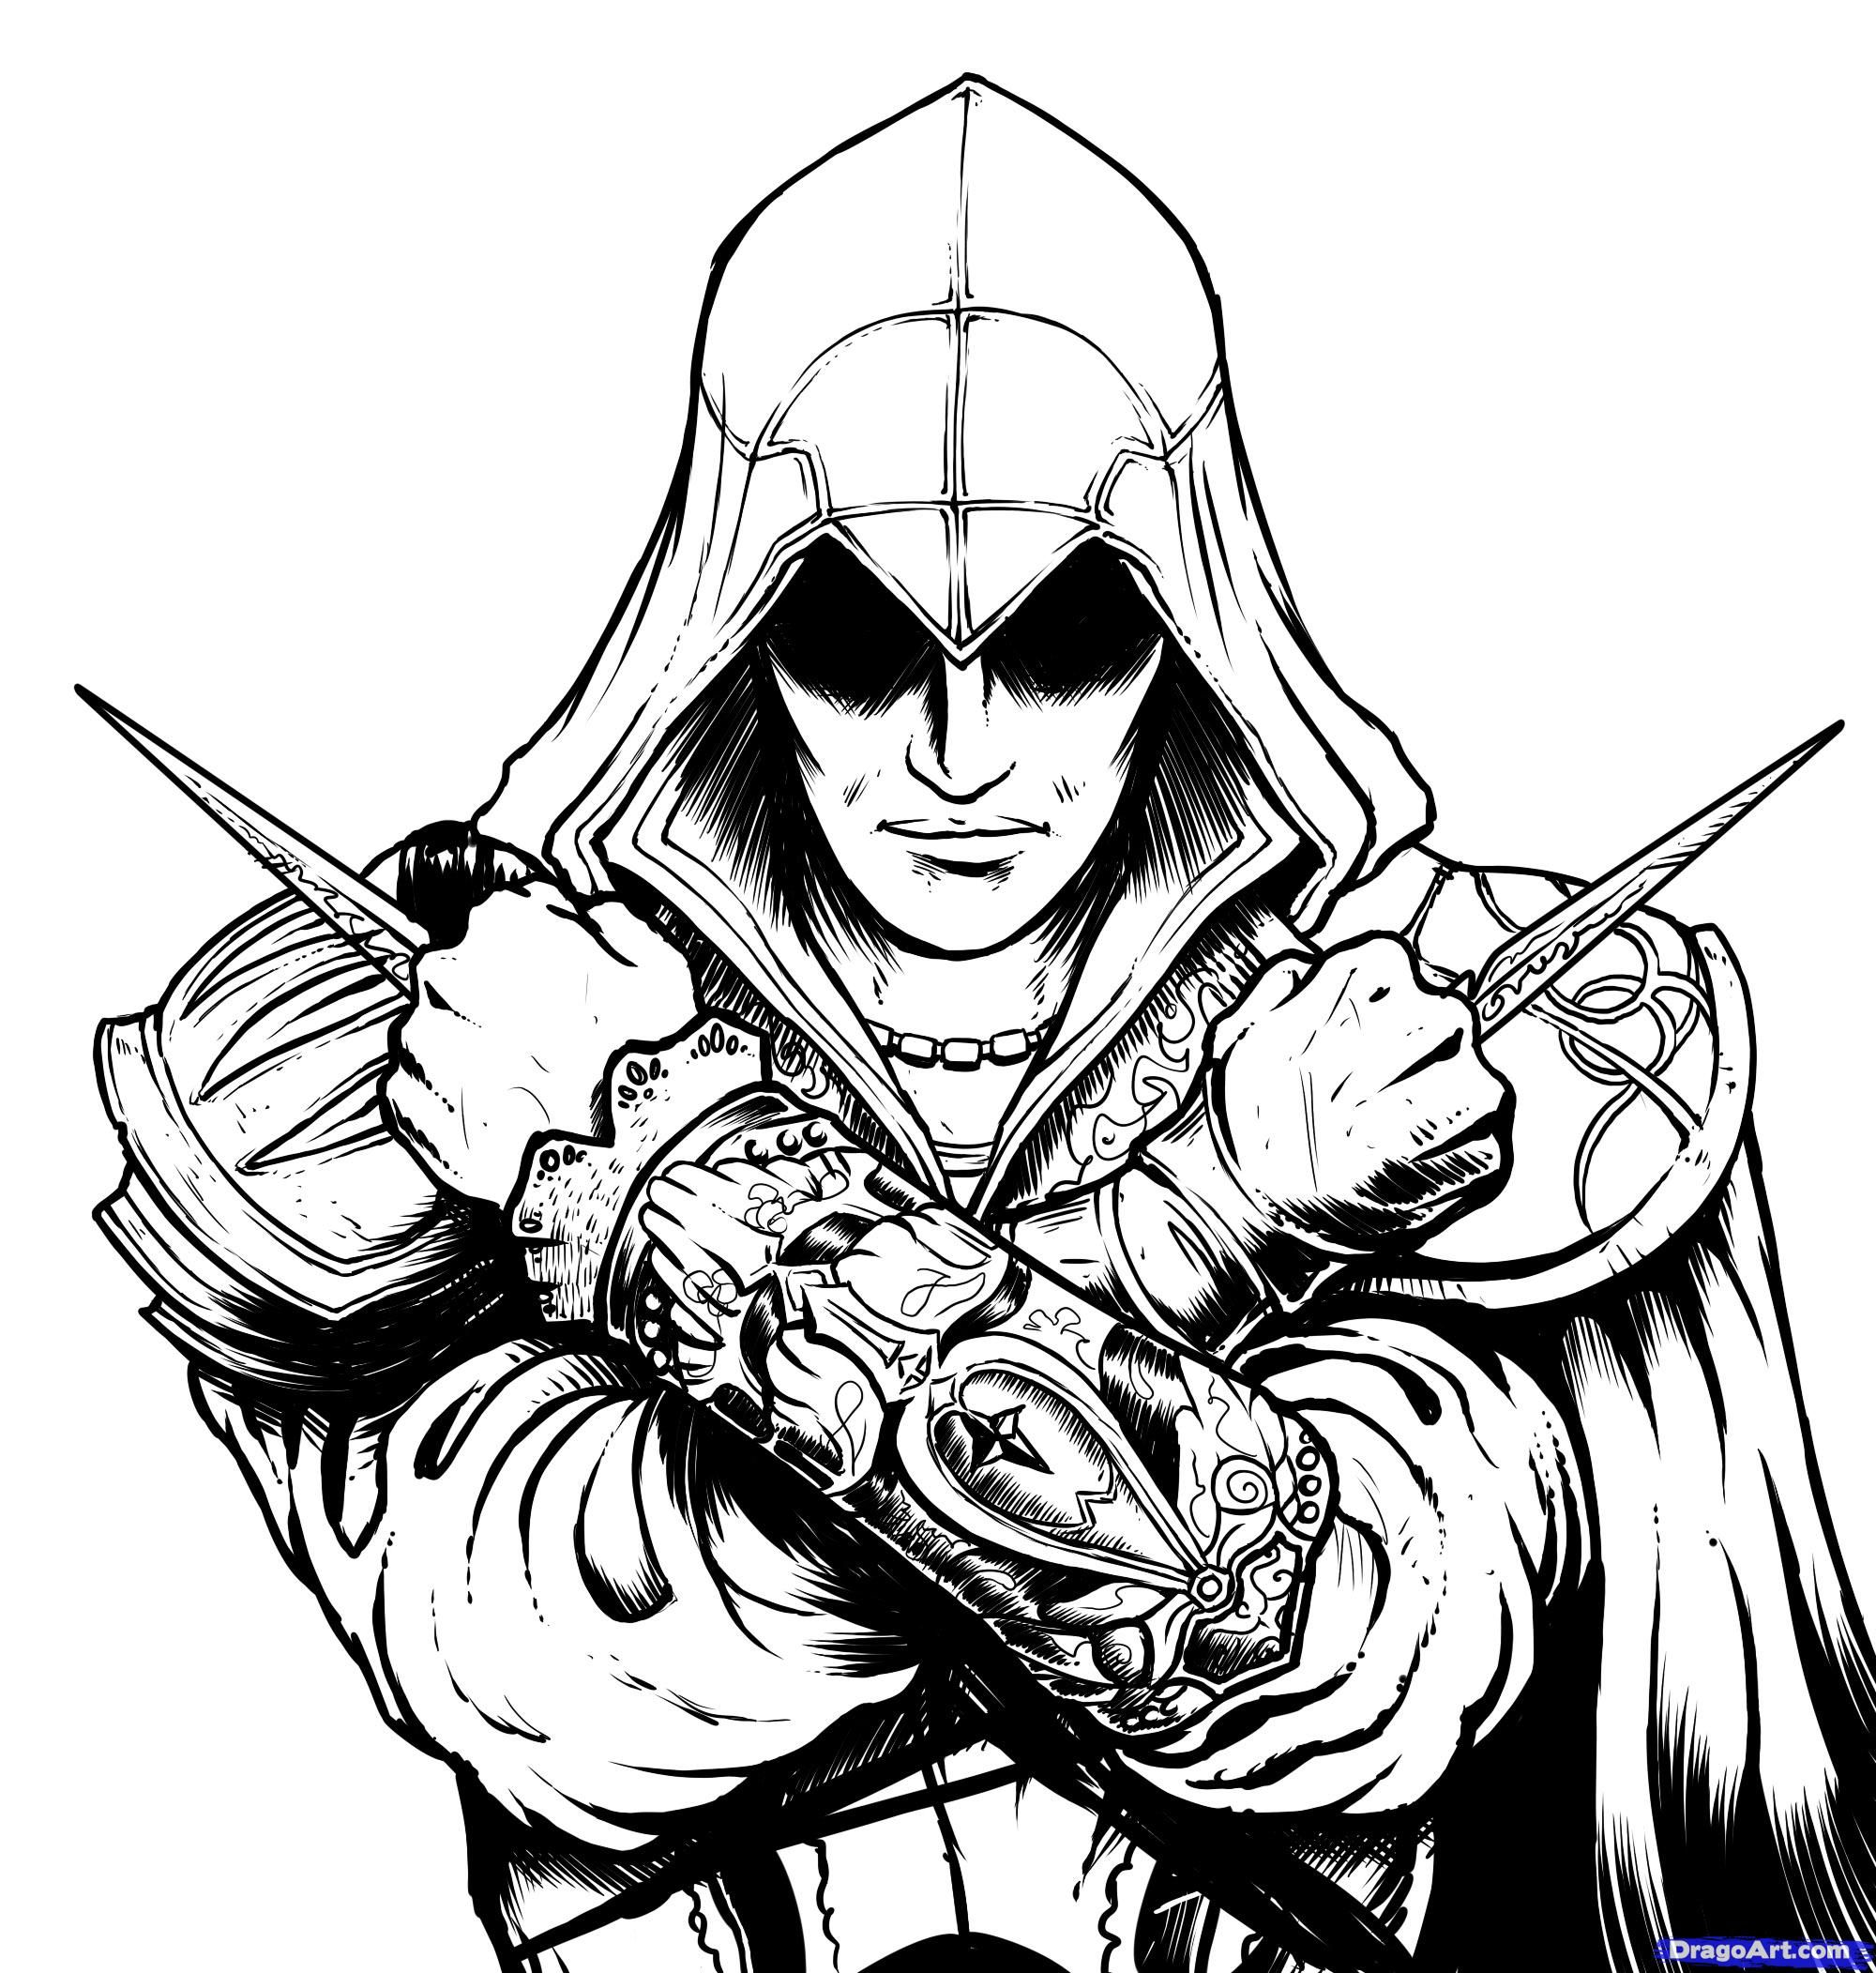 Épinglé par Nathalie Monio sur Coloriage ASSASSIN'S CREED